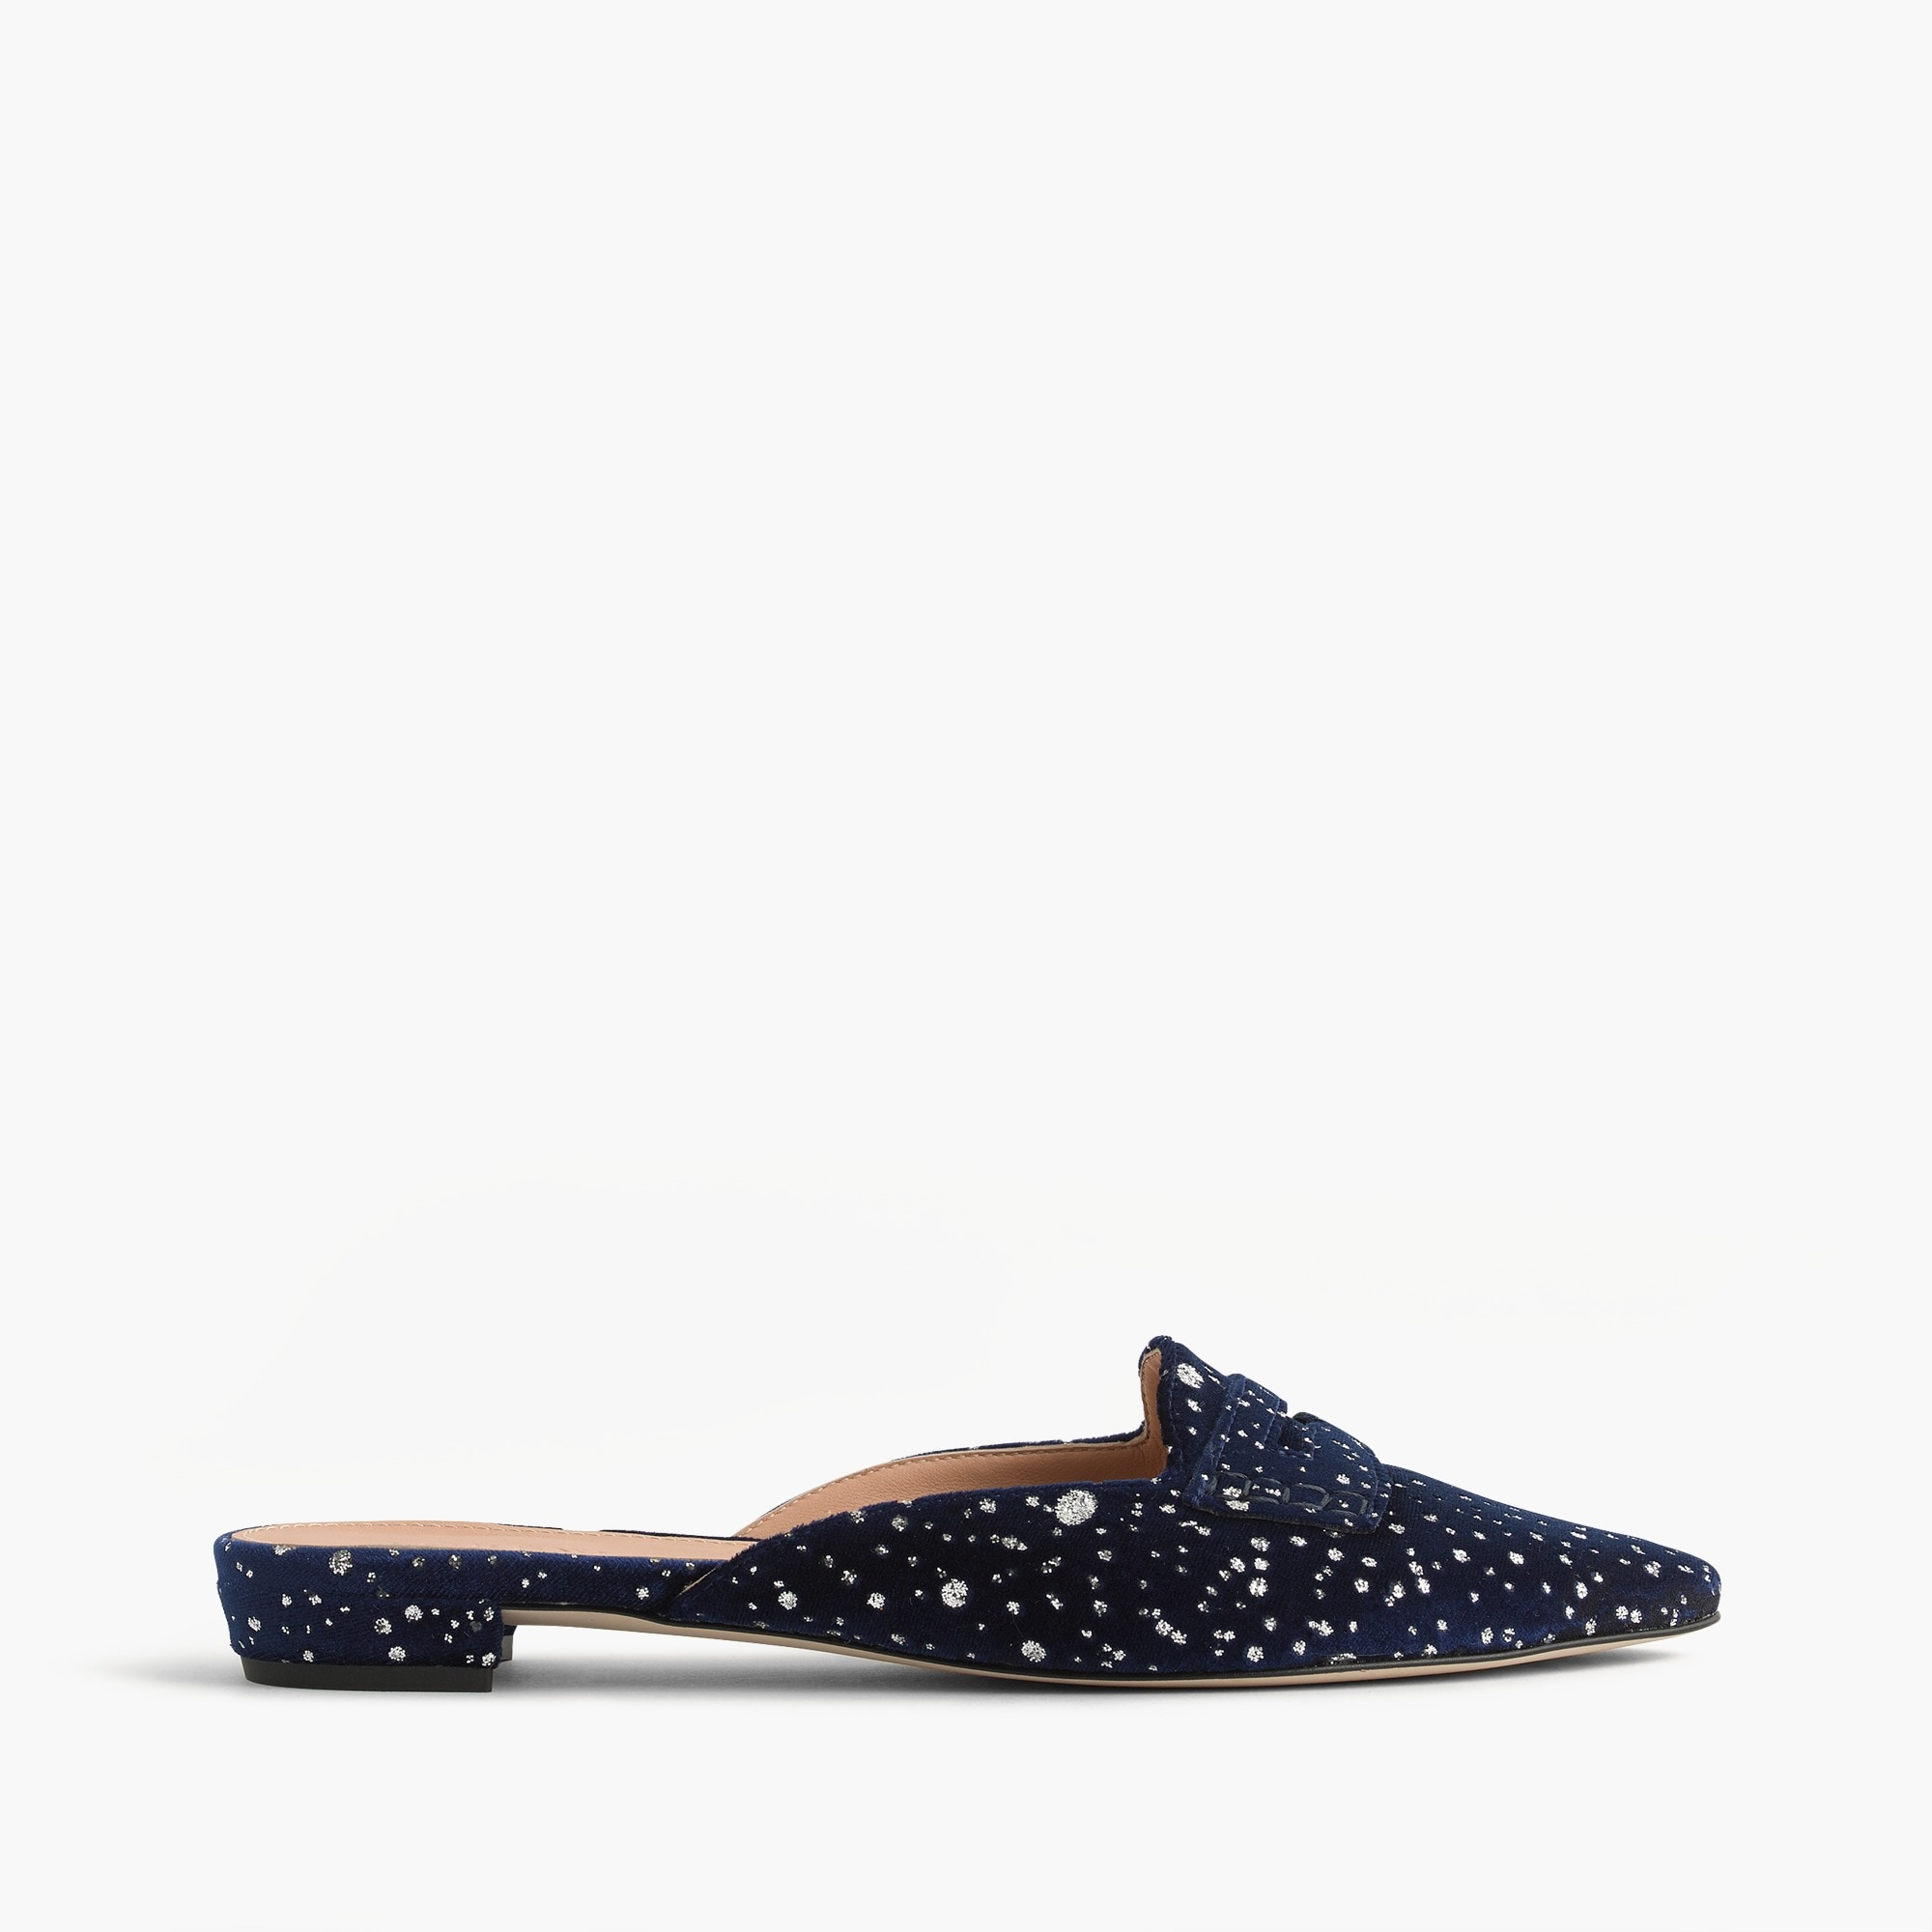 Image 1 for Glitter speckled velvet loafer mules